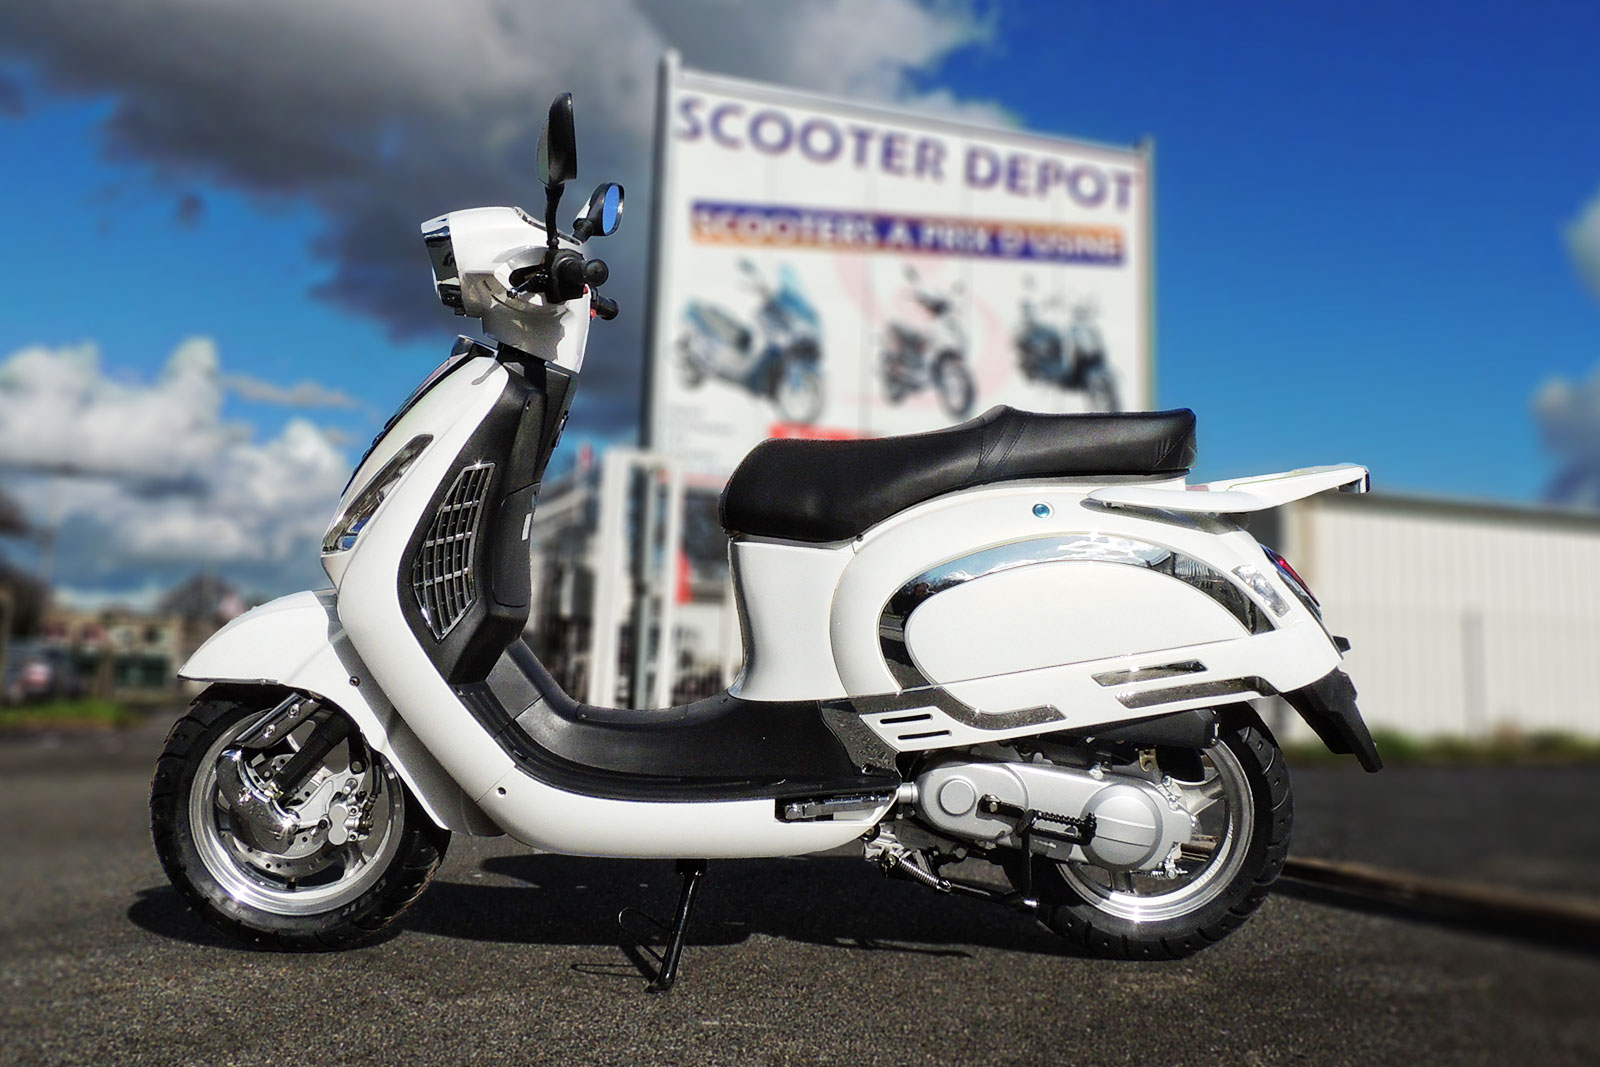 SCOOTER-50-ECCHO-EAGLE-WING-01